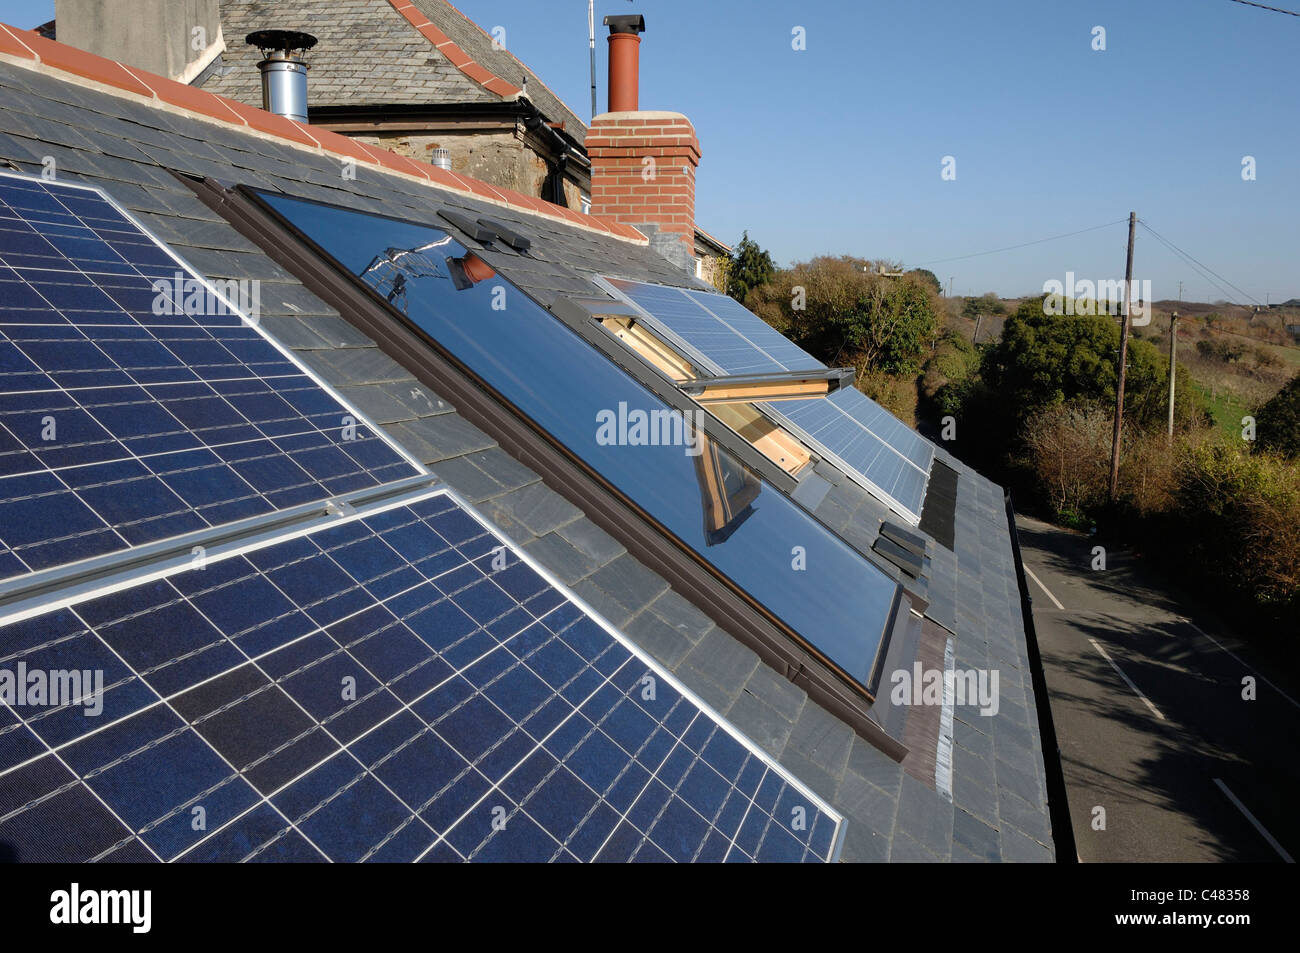 Photo voltaic cells installed on a private house in Cornwall England - Stock Image